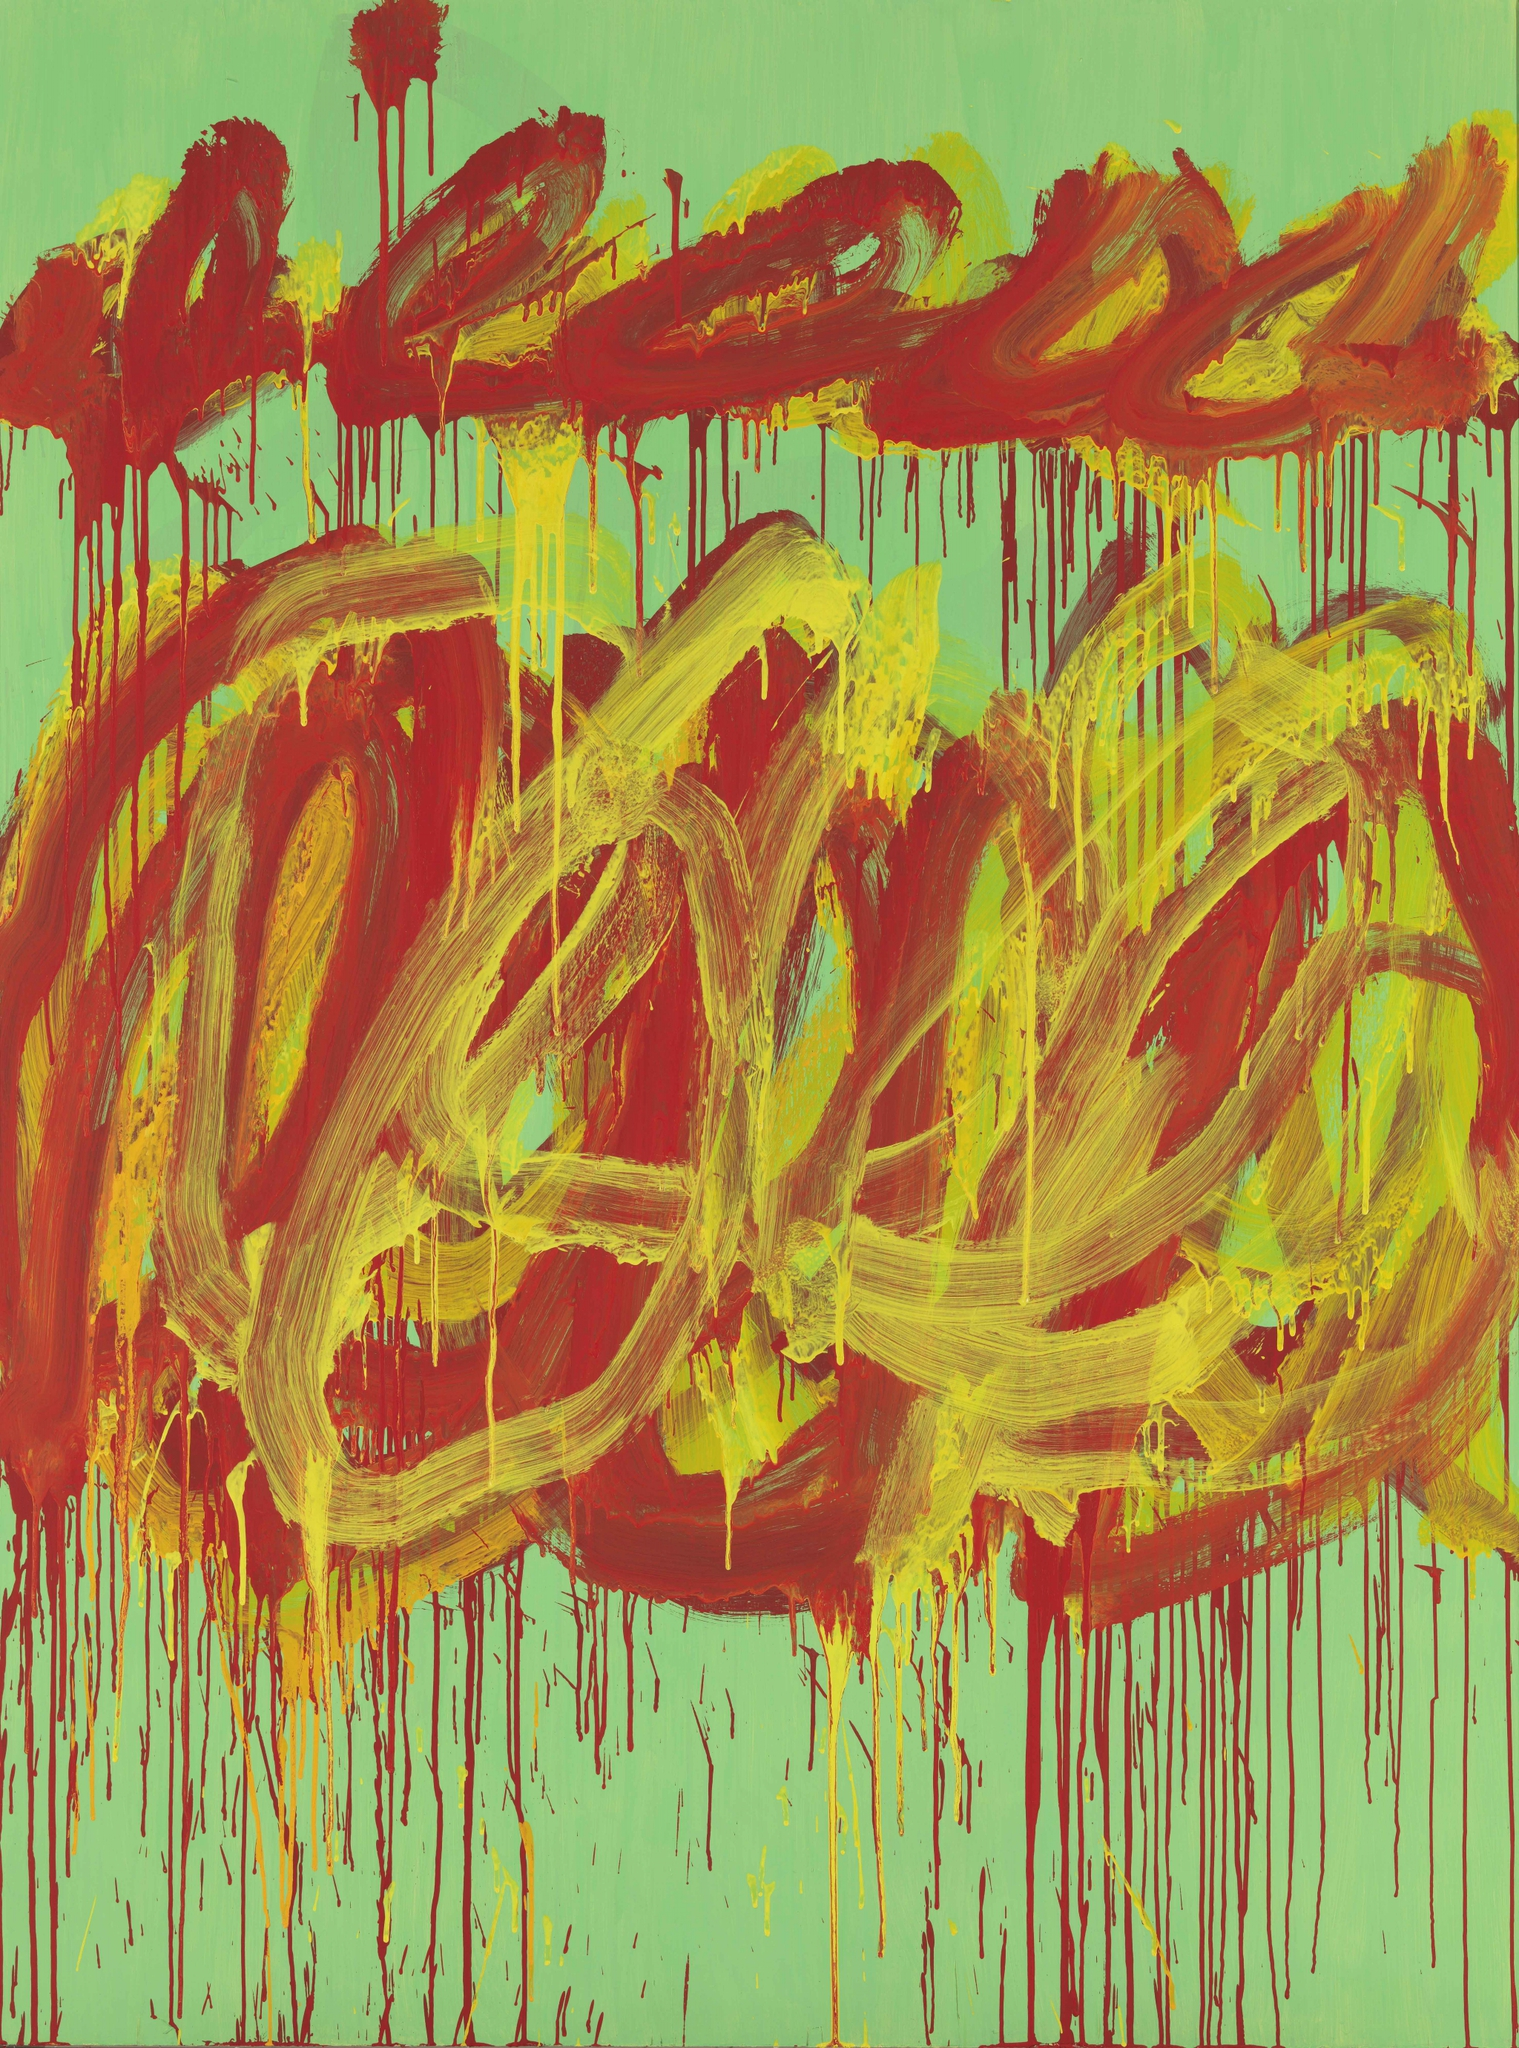 Unique survey of Cy Twombly's work opens at Museum Brandhorst